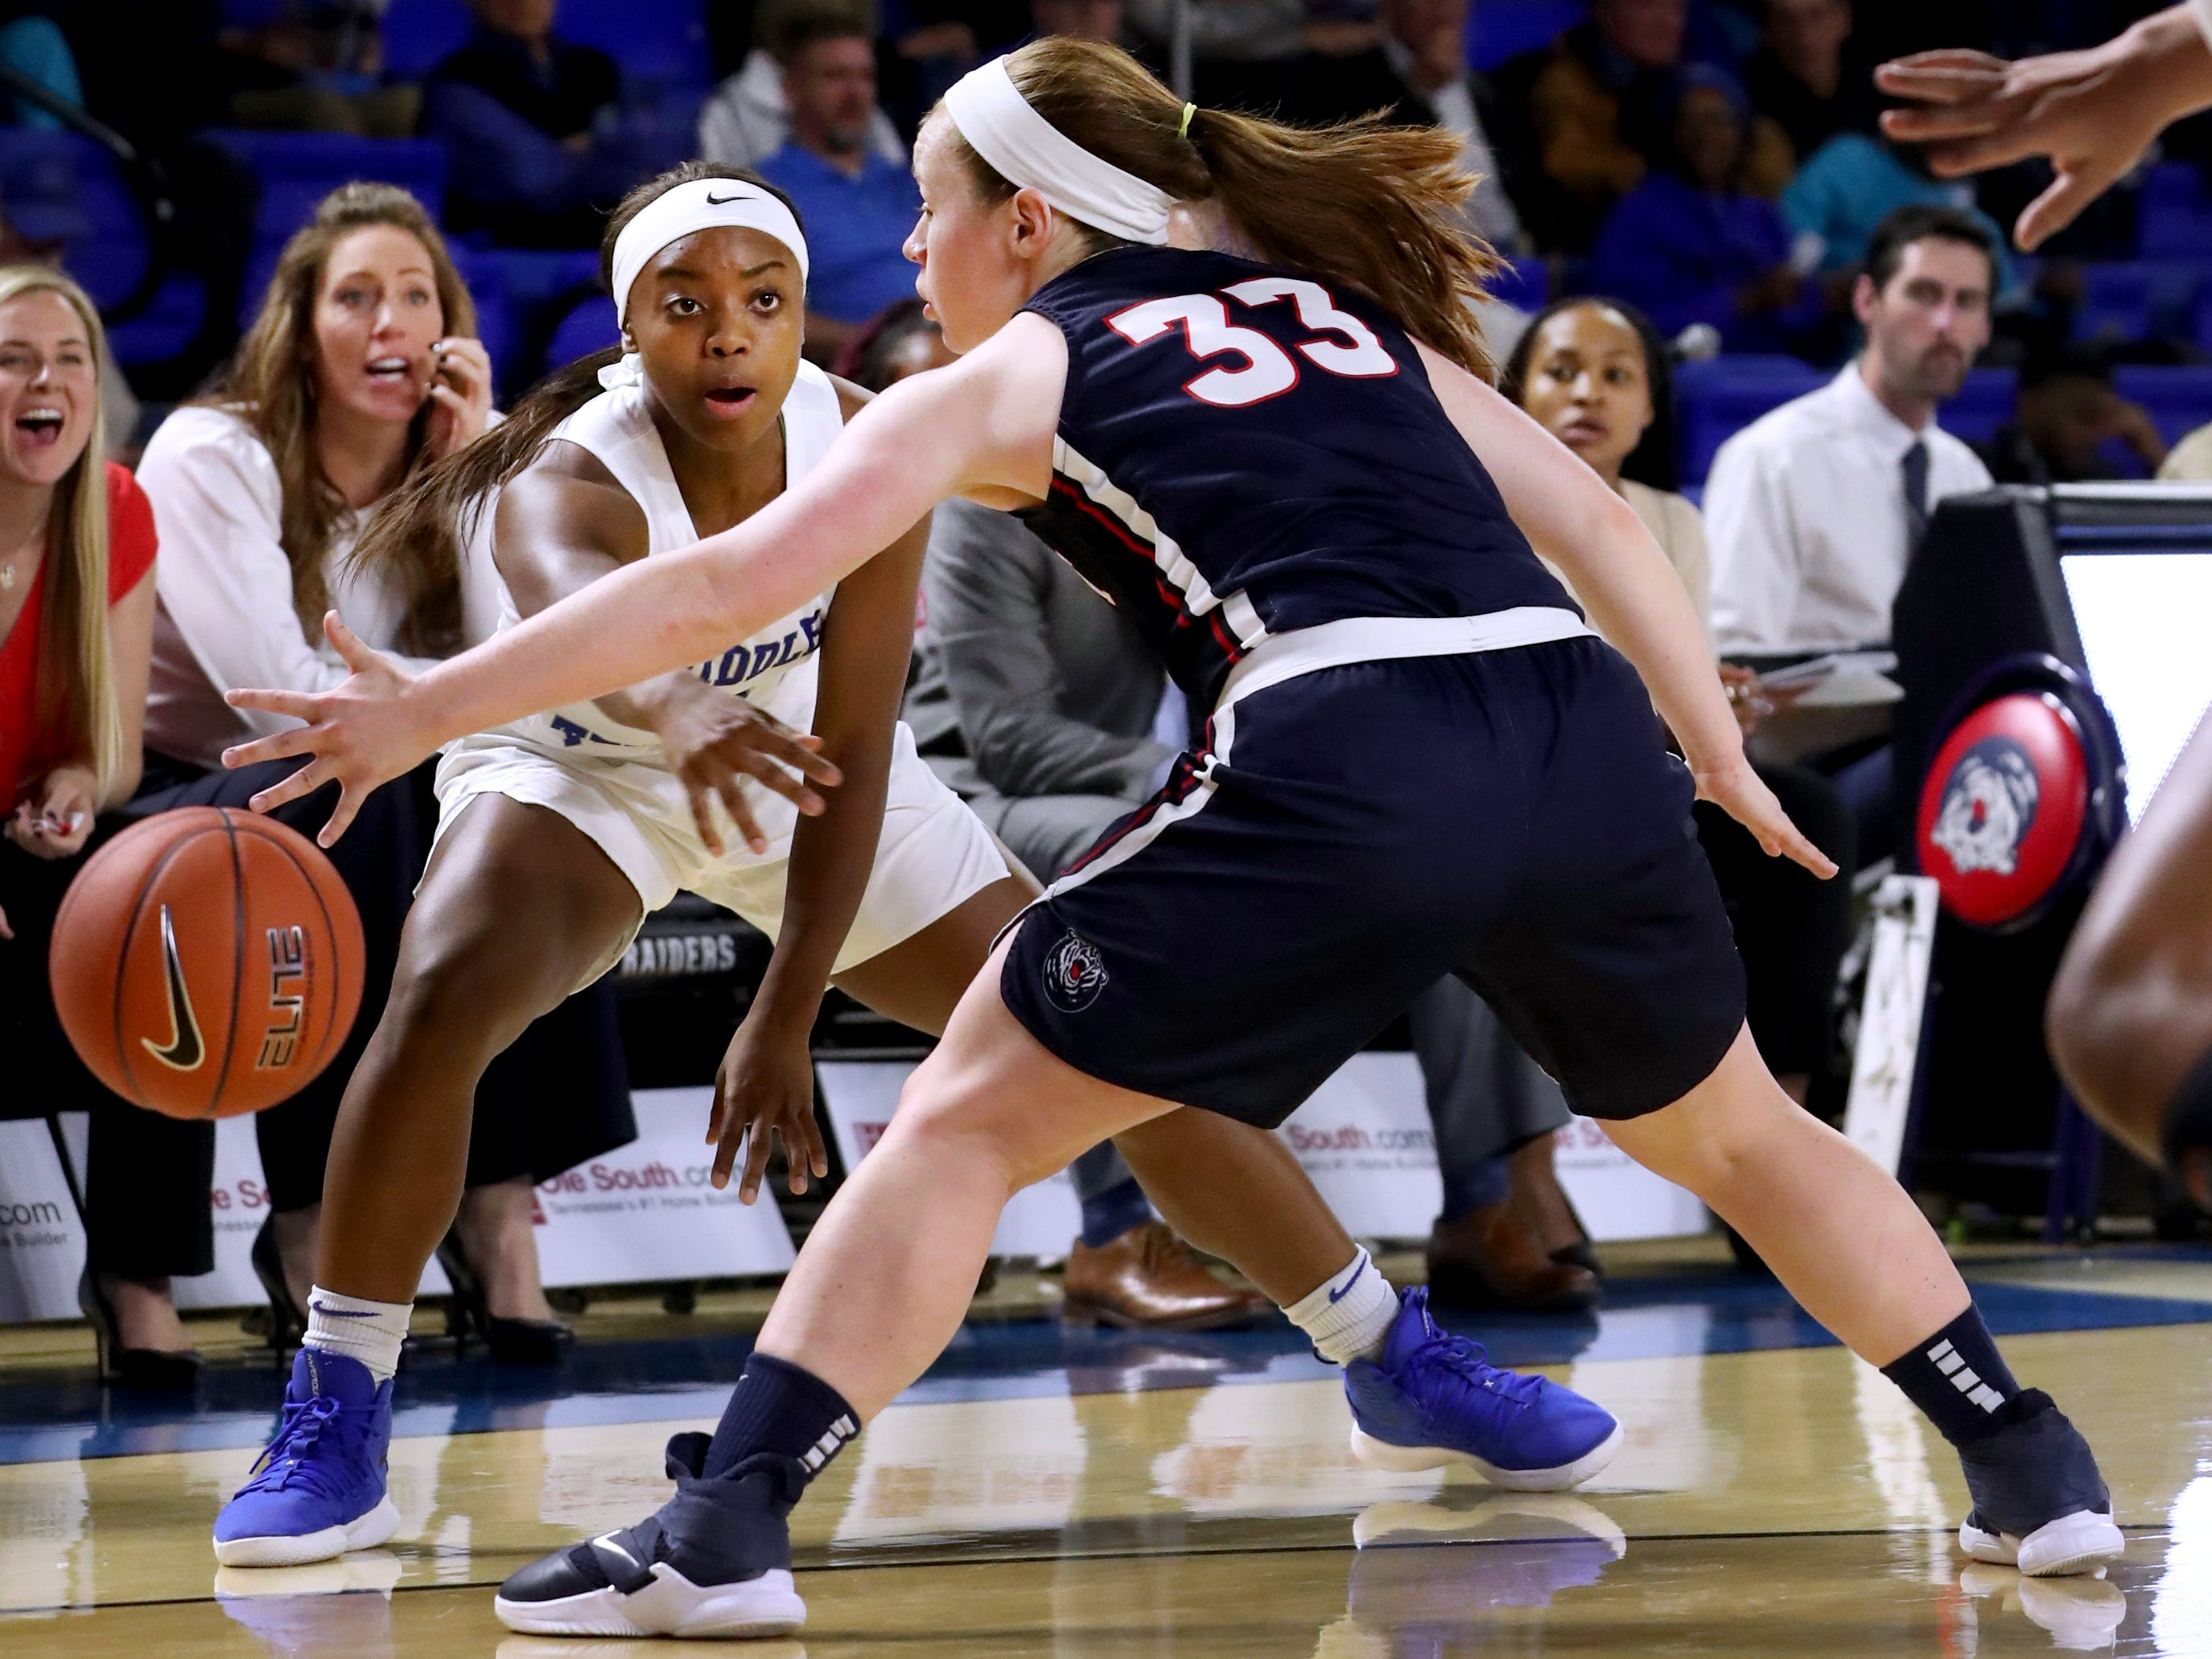 MTSU's Taylor Sutton (2) passes the ball as Belmont's Darby Maggard (33) tries to steal the ball during the game at MTSU on Monday, Nov. 19, 2018.